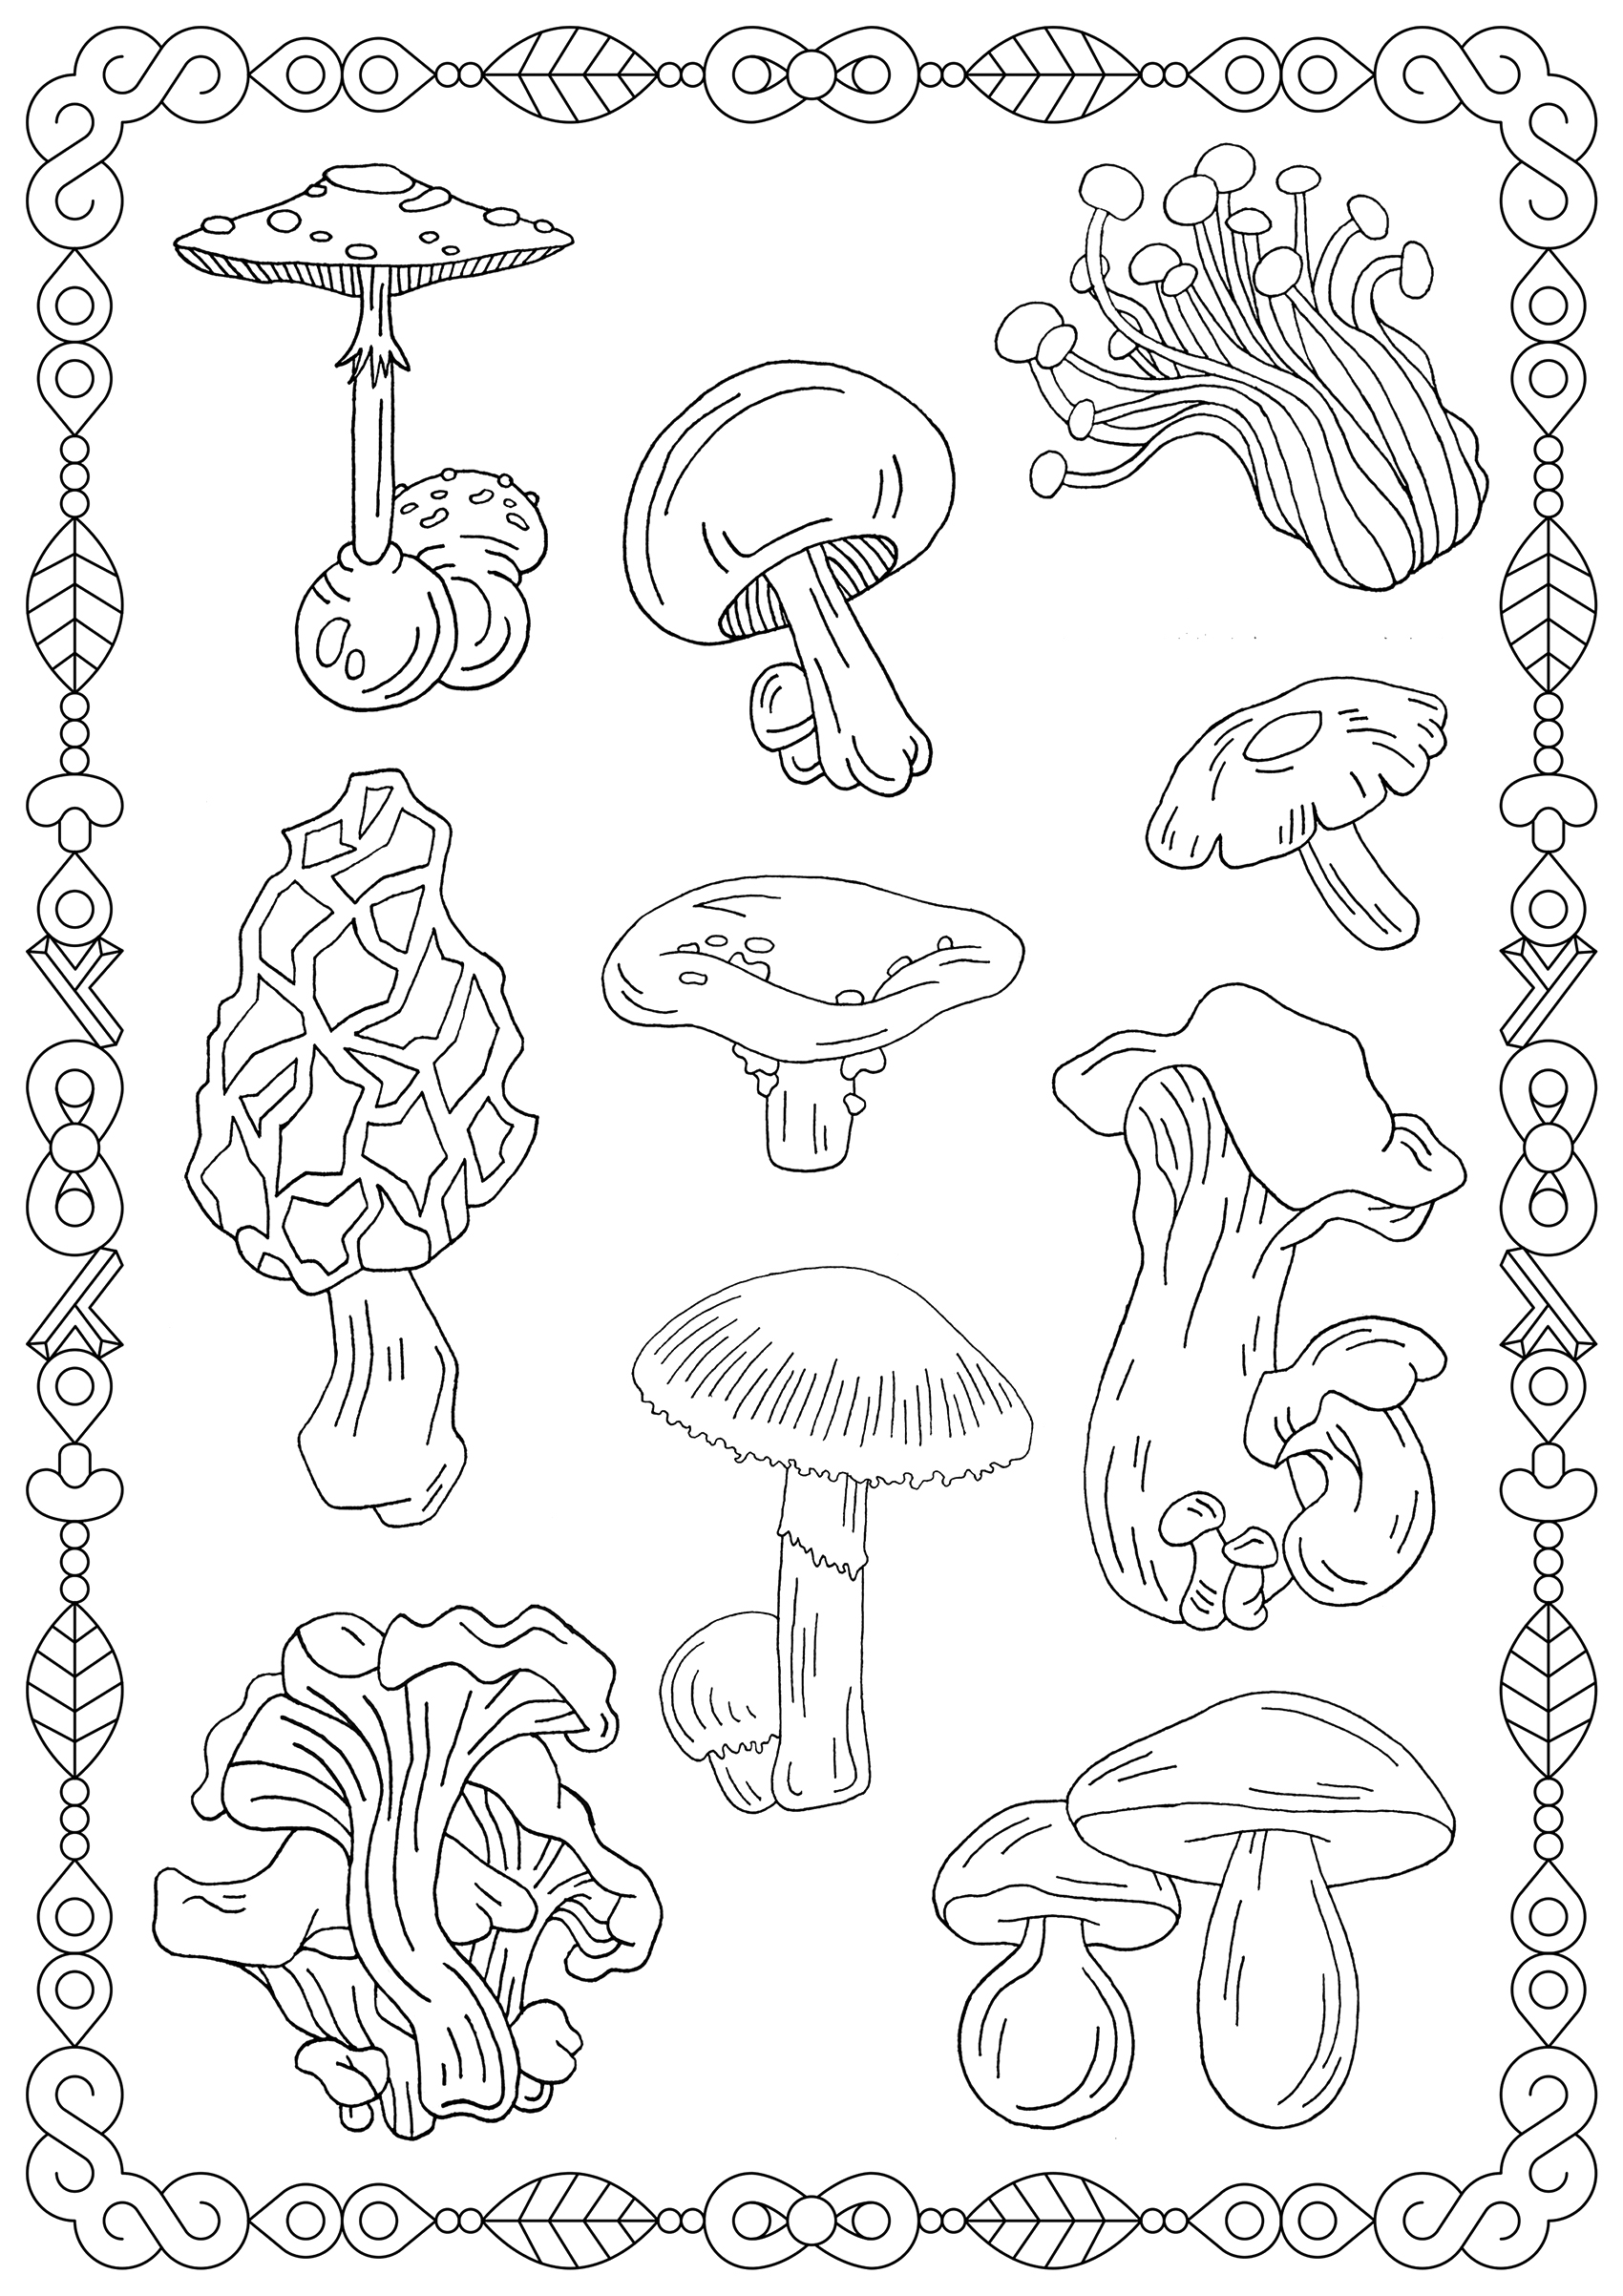 Printable Mushrooms coloring page to print and color for free